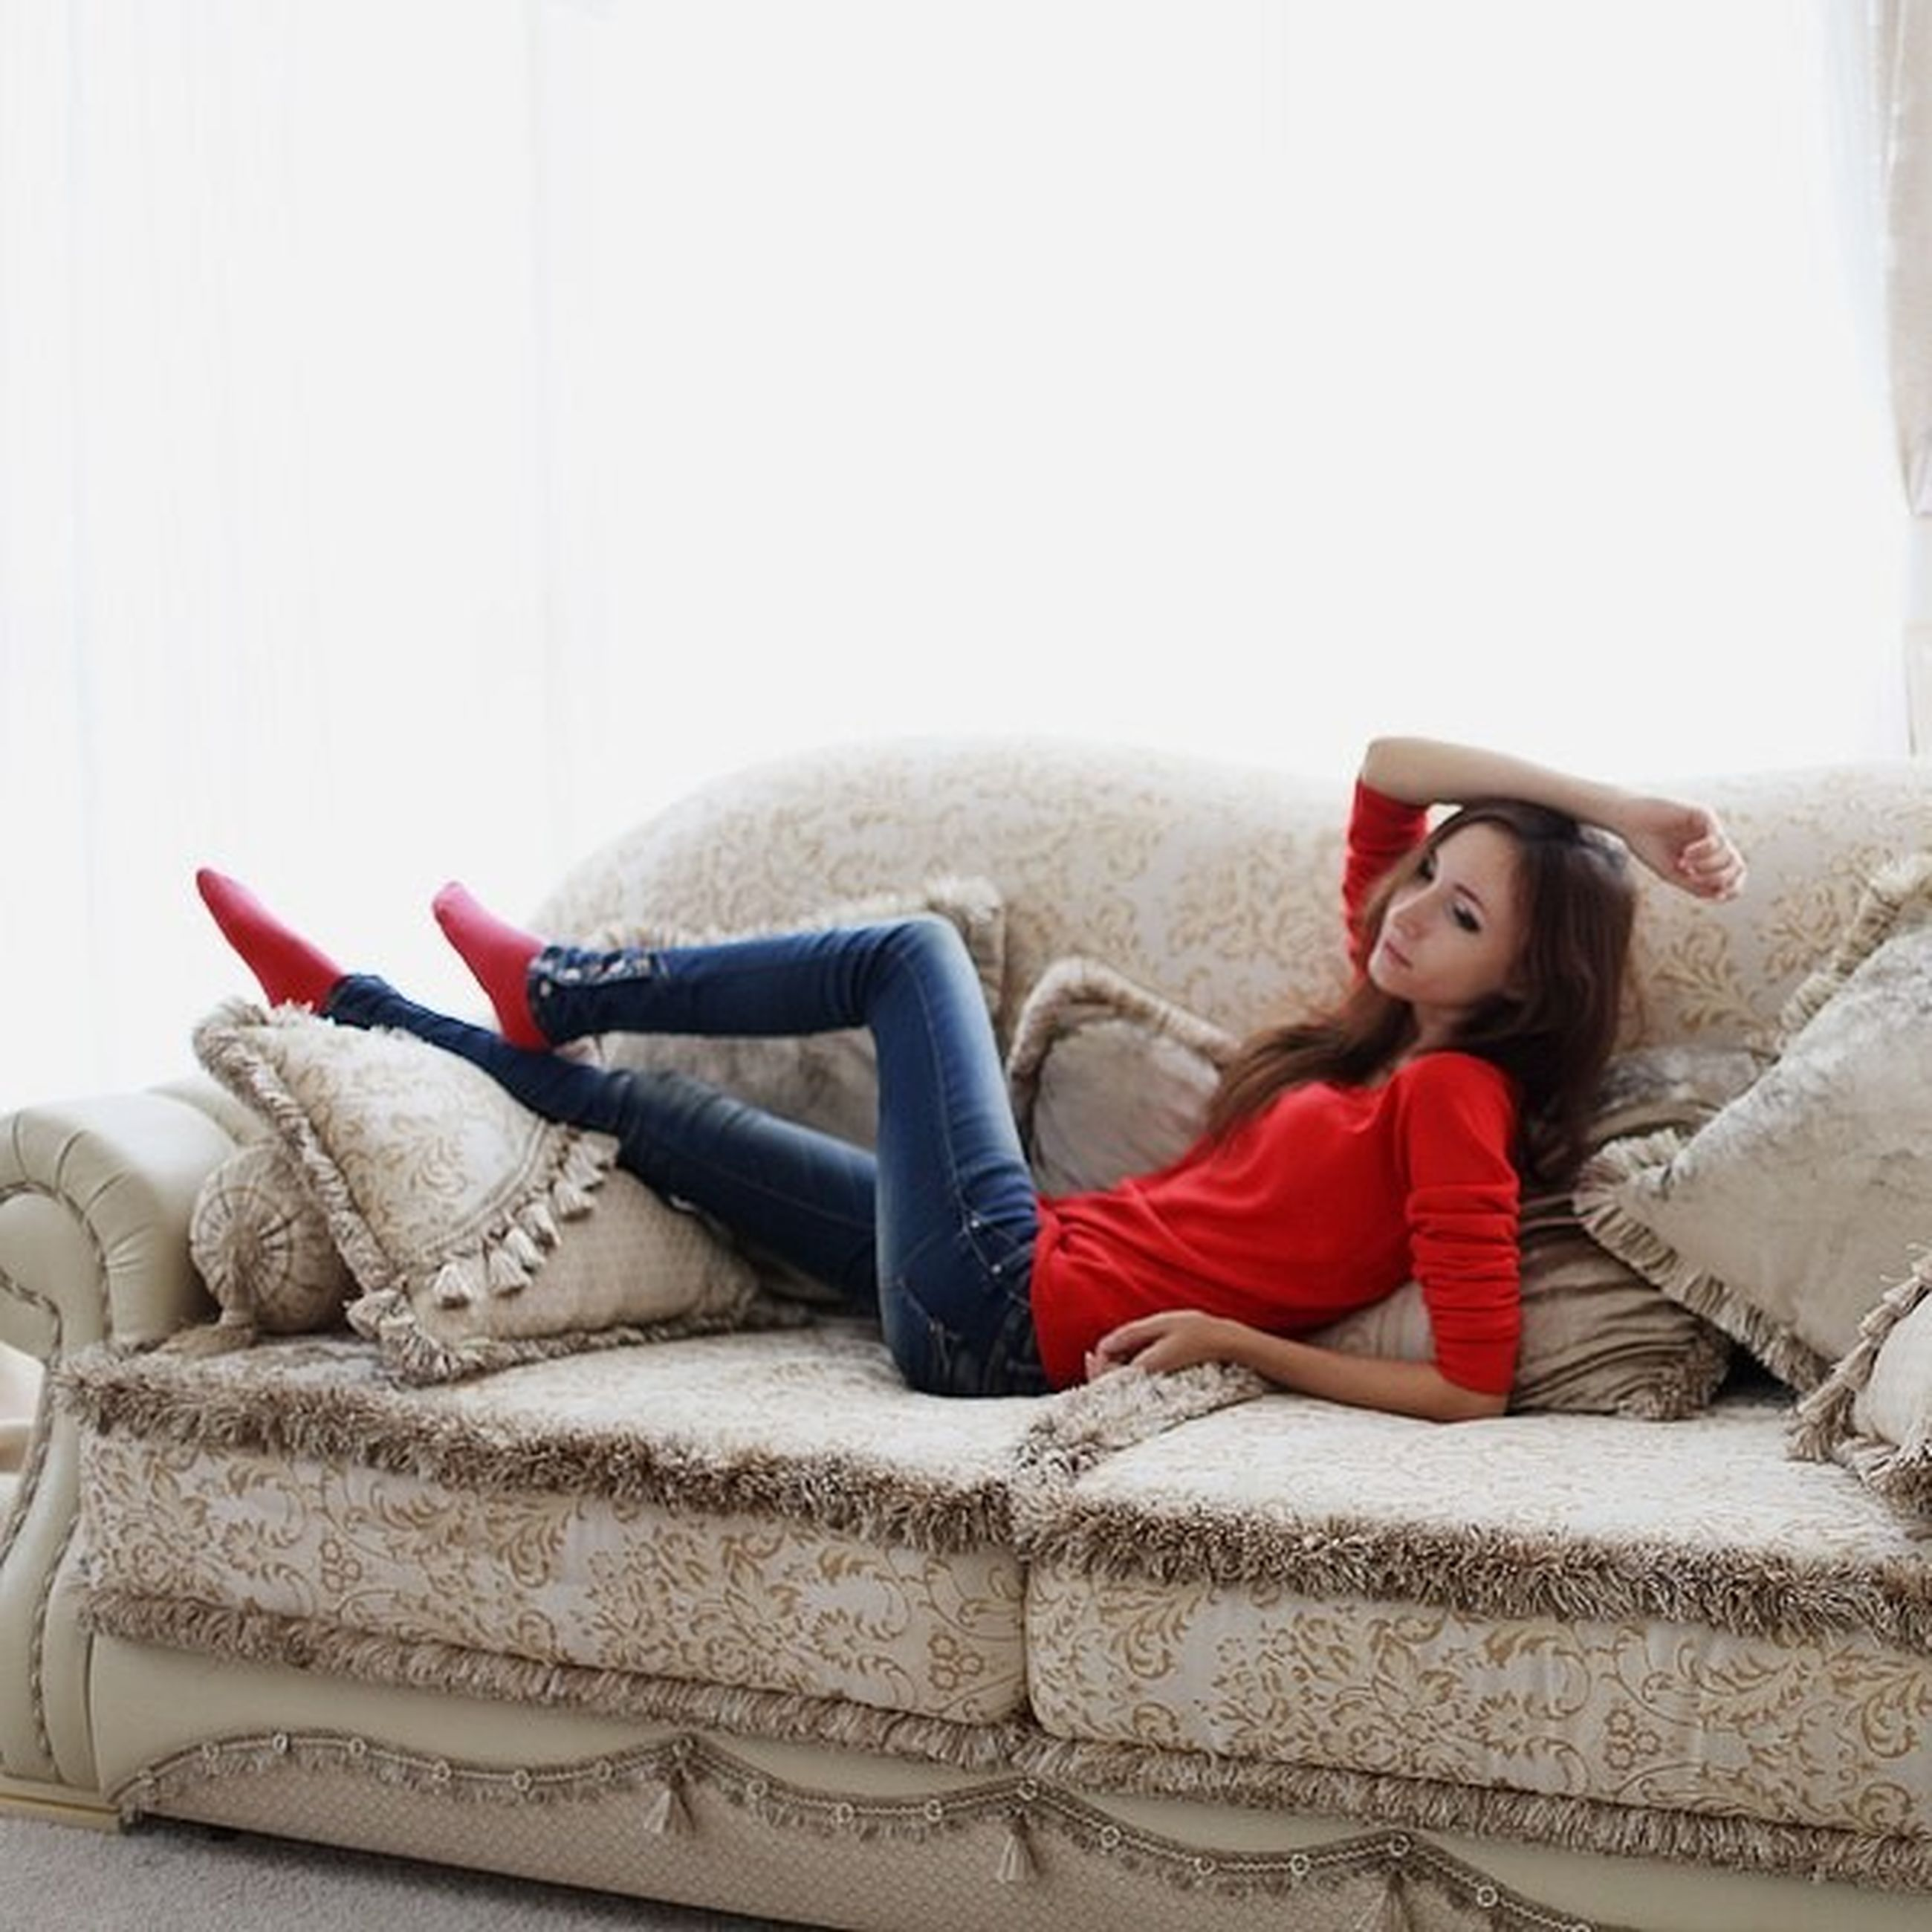 sitting, relaxation, person, casual clothing, indoors, young adult, full length, sofa, lifestyles, resting, lying down, leisure activity, bed, young men, home interior, three quarter length, comfortable, front view